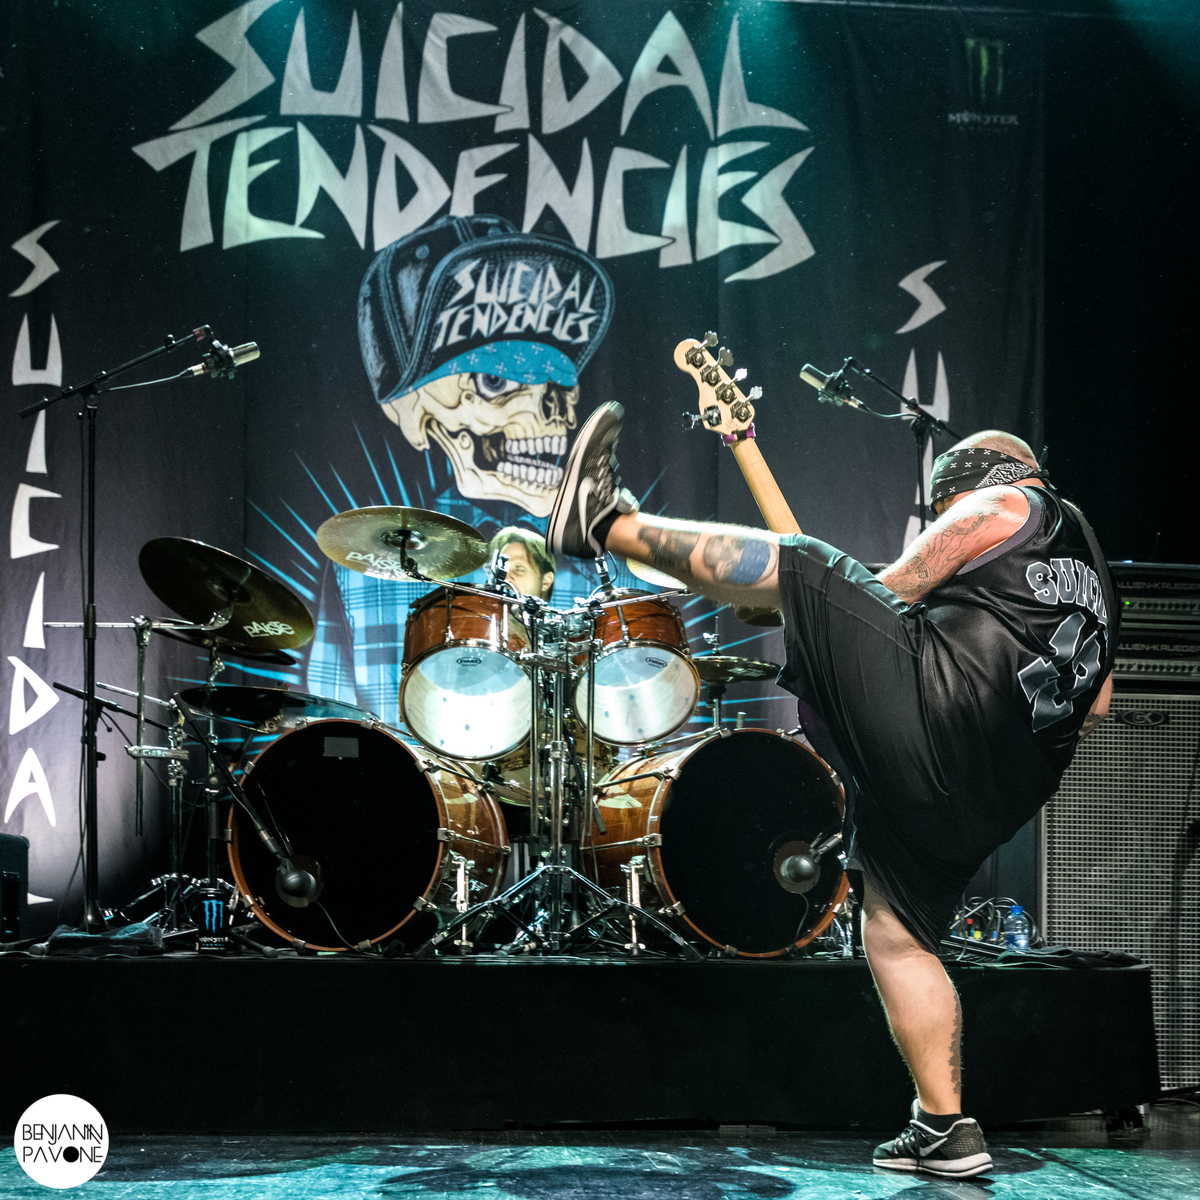 Suicidal Tendencies + Glock 203 au Krakatoa suicidal-tendencies